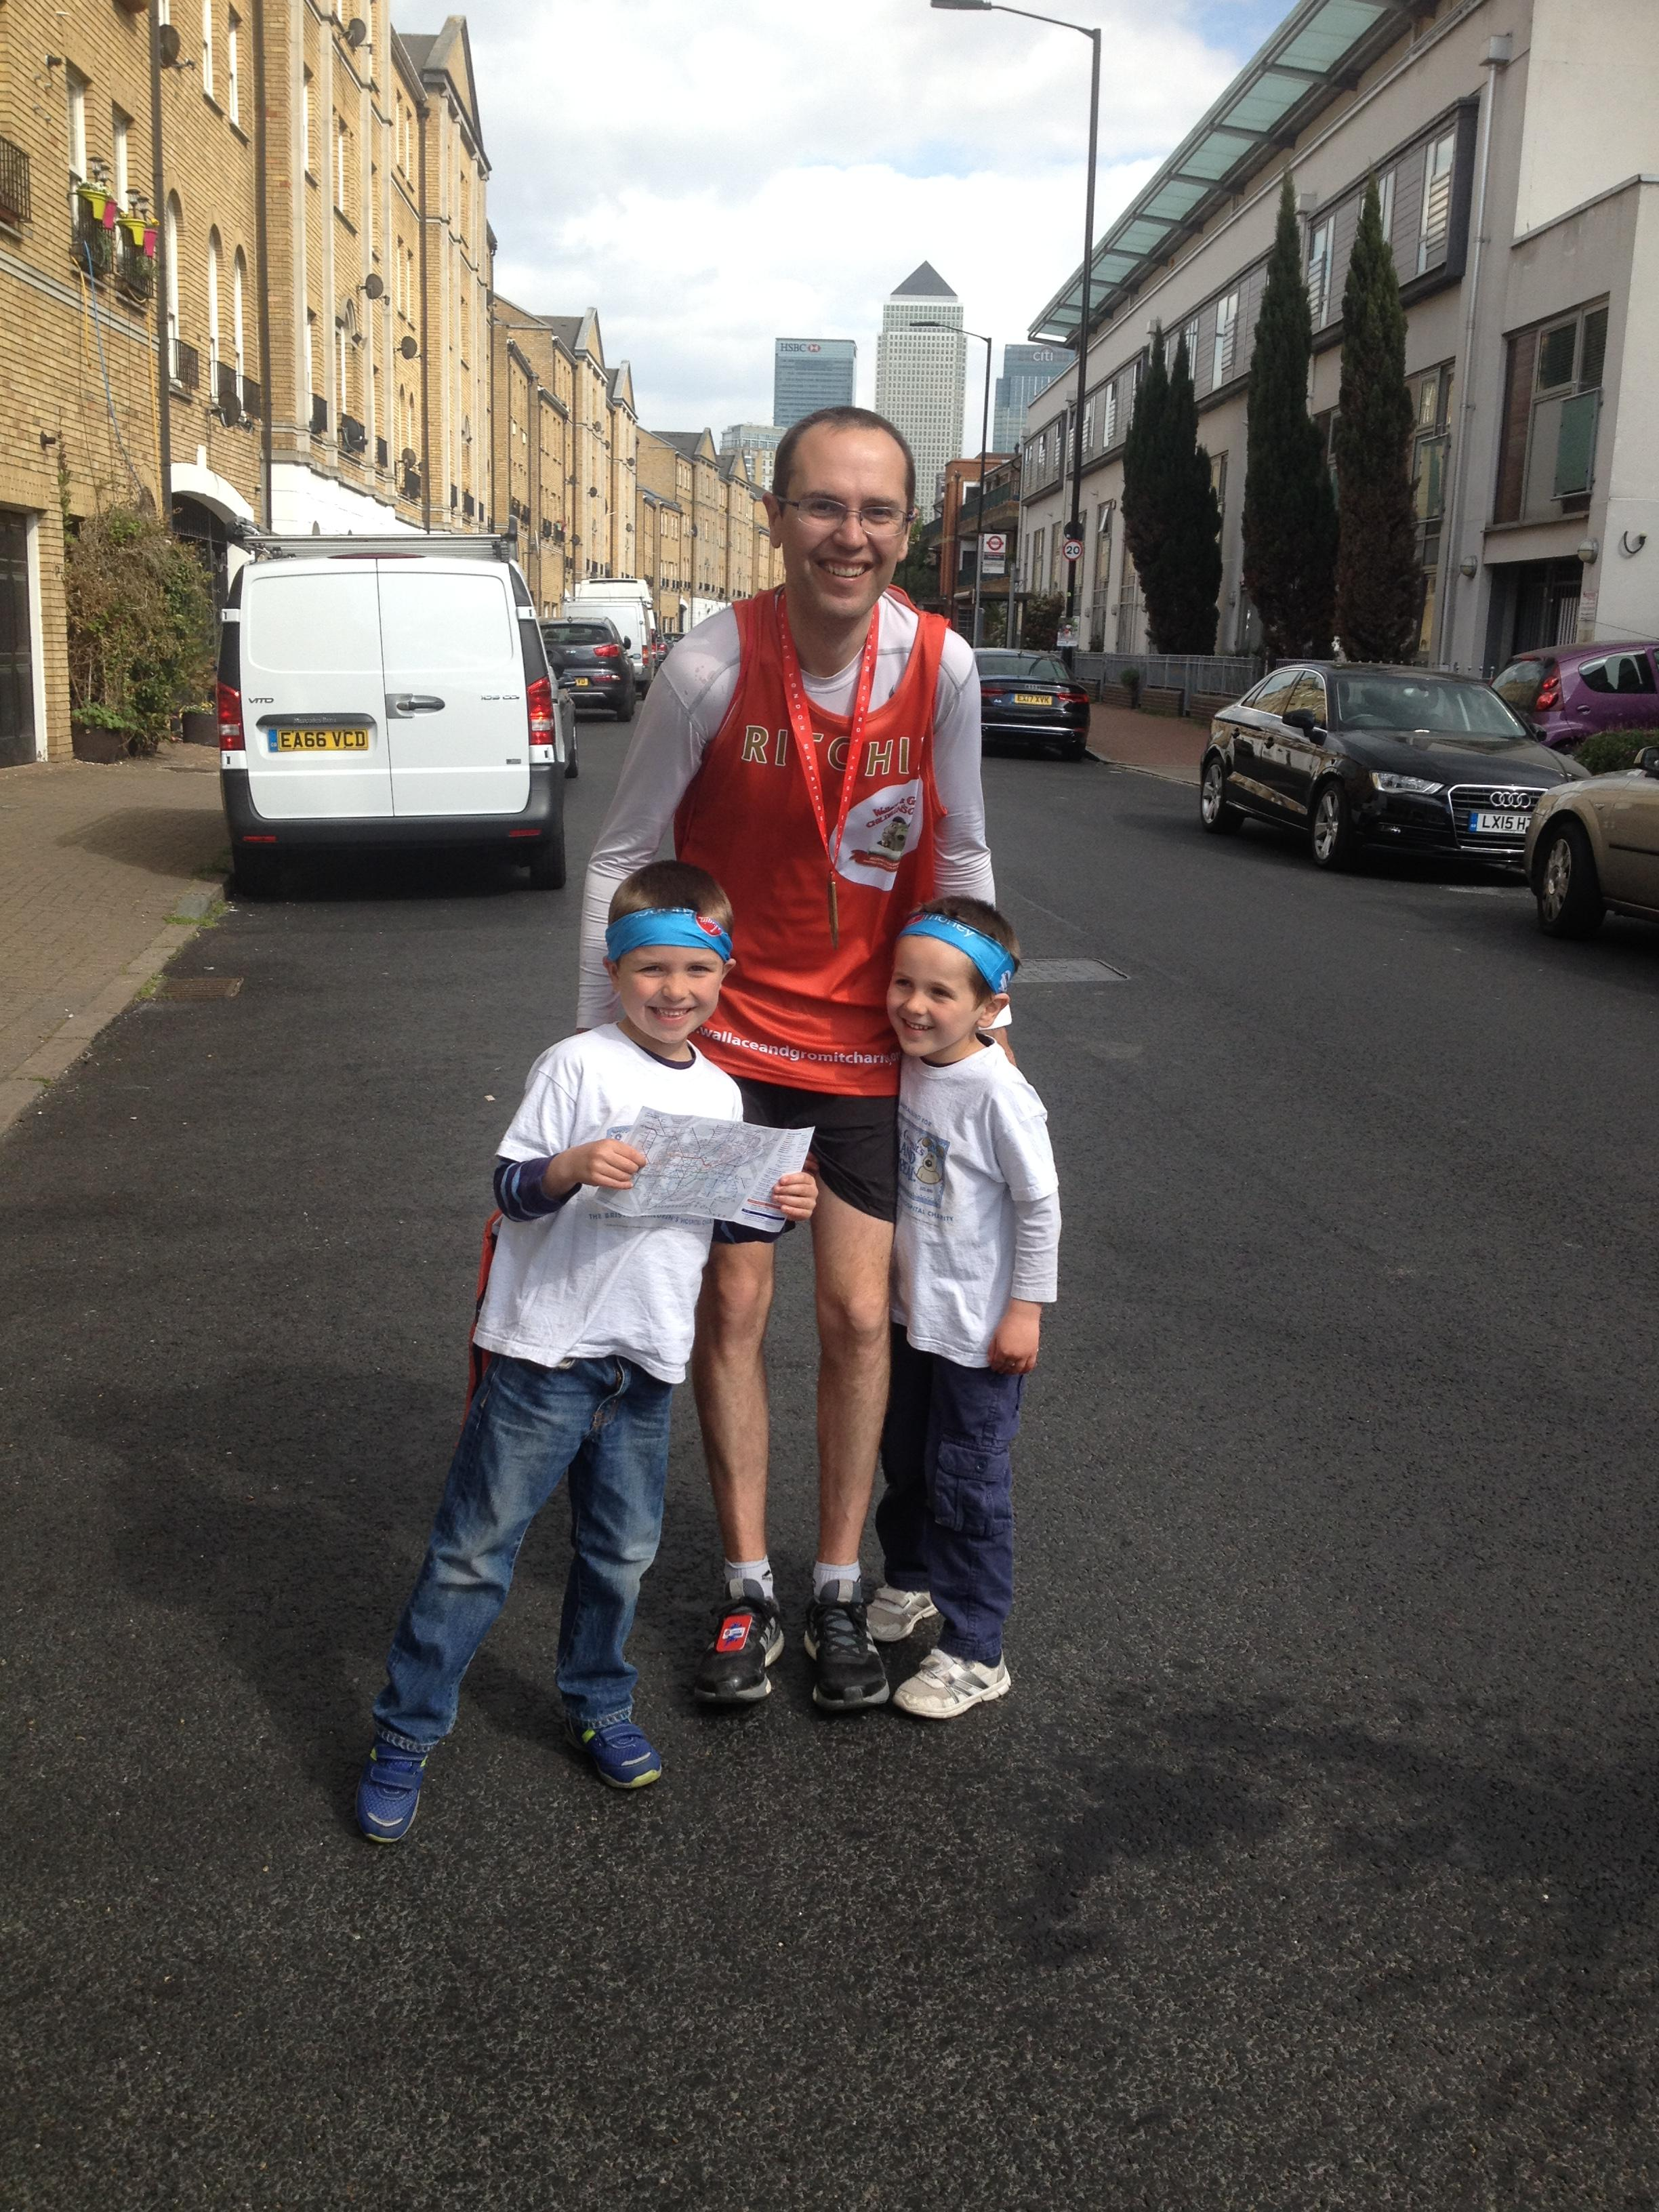 Congratulations to our London Marathon Runners